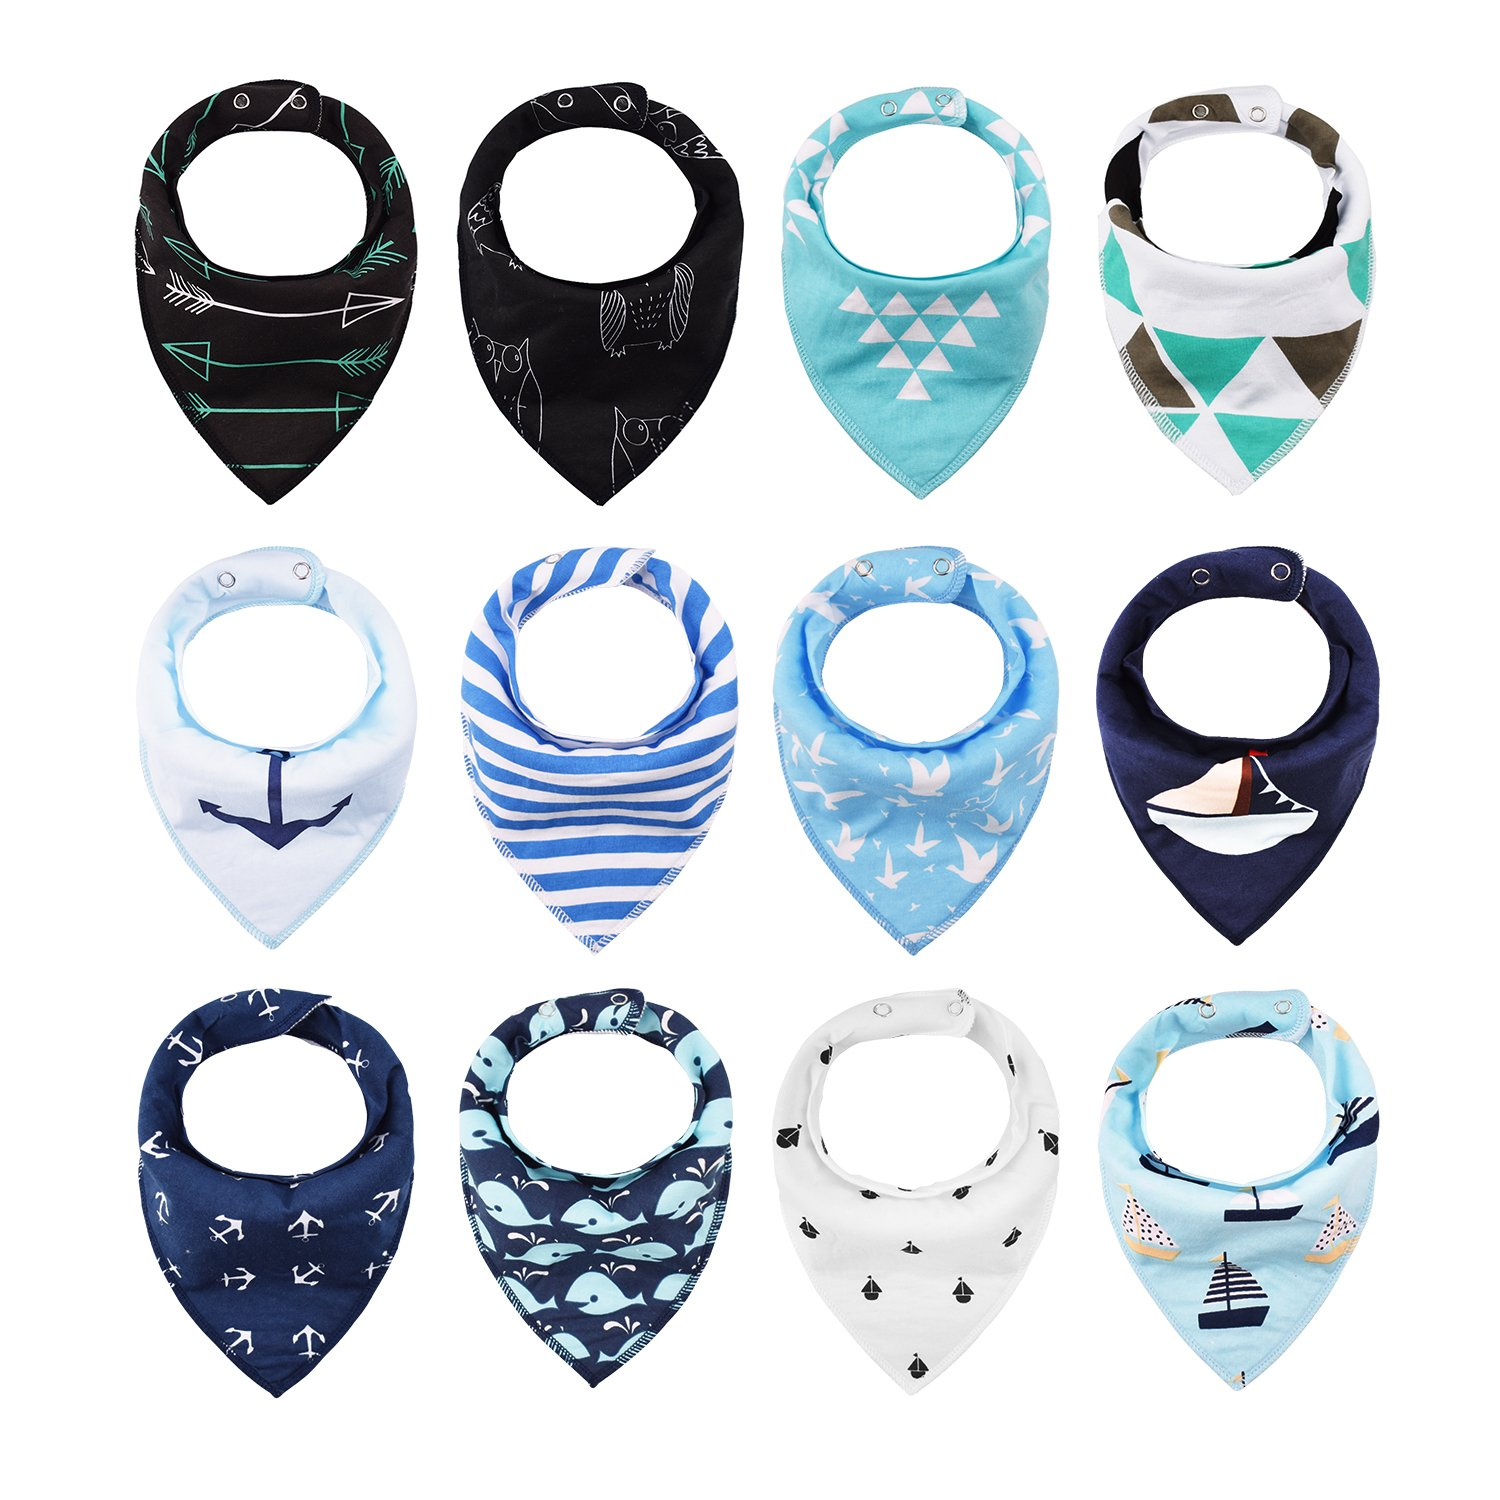 iZiv 4 PACK Baby Bandana Drool Bibs with Adjustable Snaps, Absorbent Soft Cotton Lining 0-2 Years (Color-1) Dlife TZN01